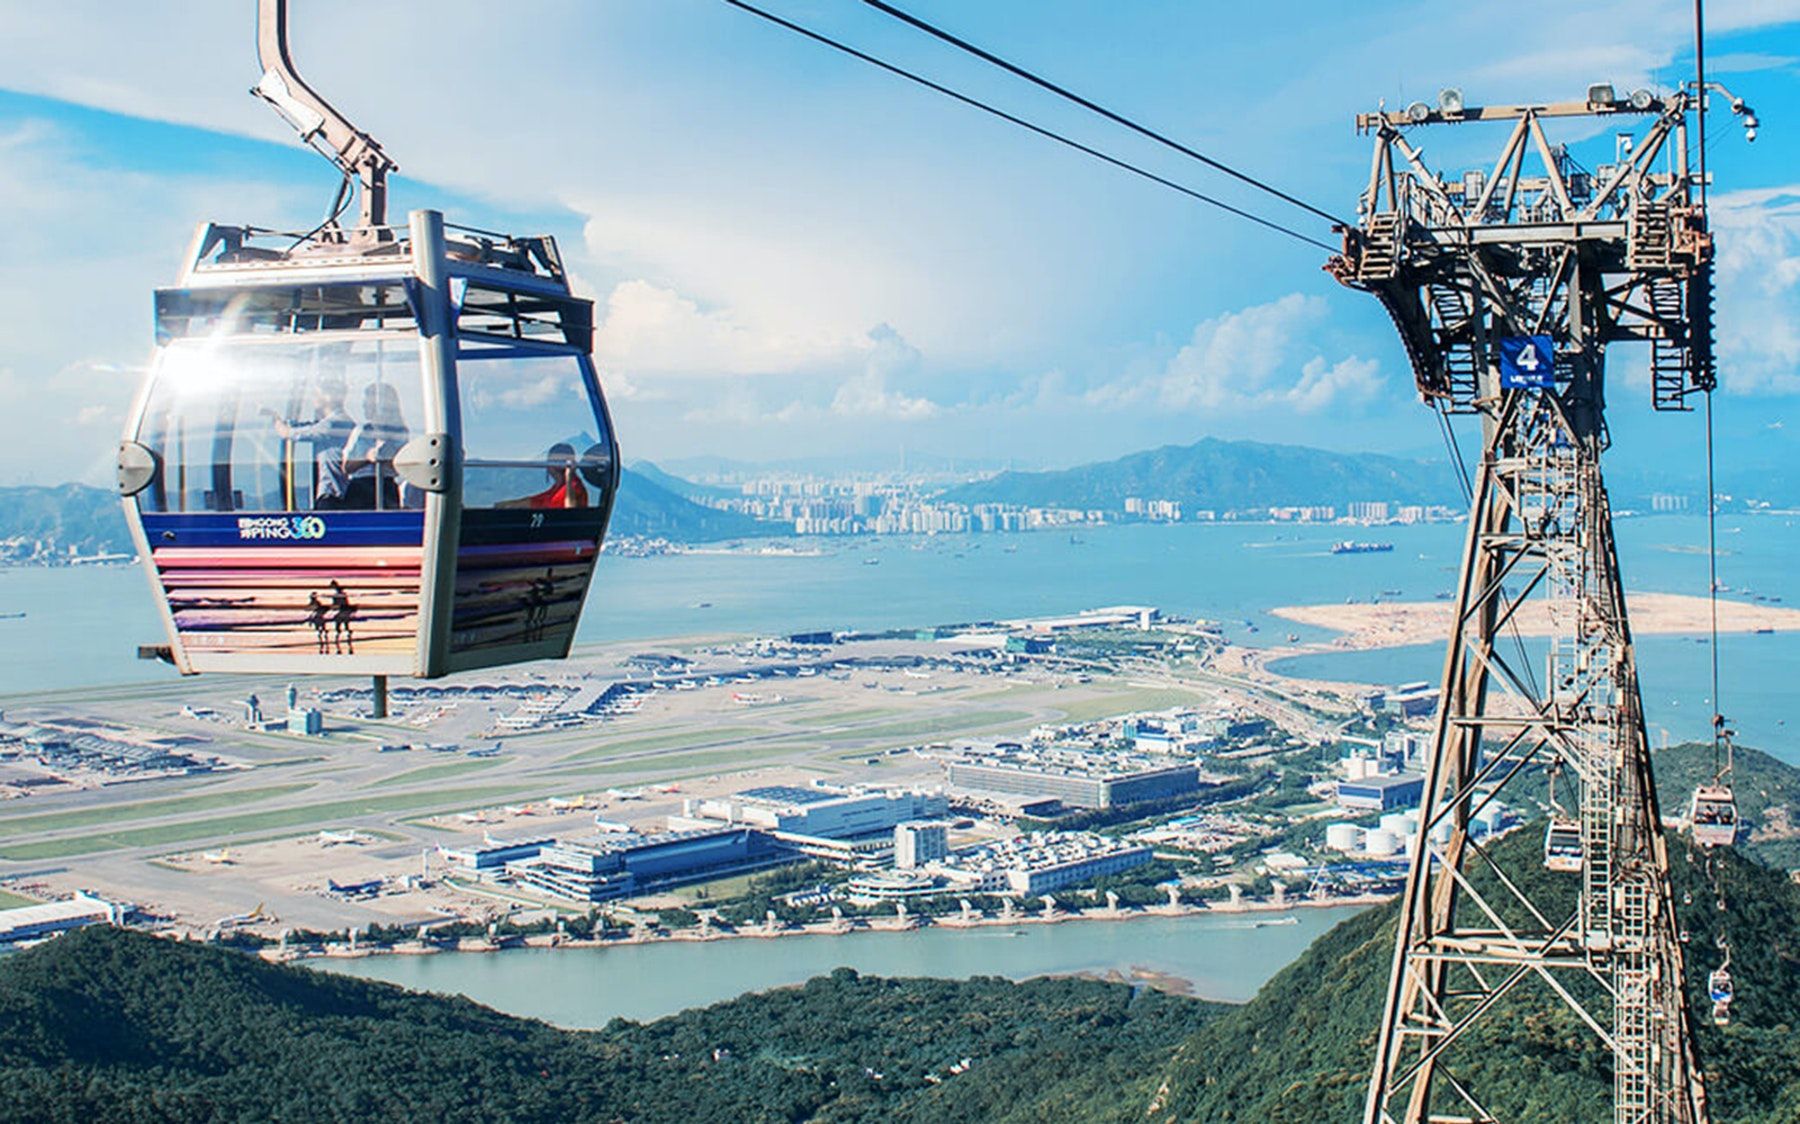 ngong ping 360 cable car tickets